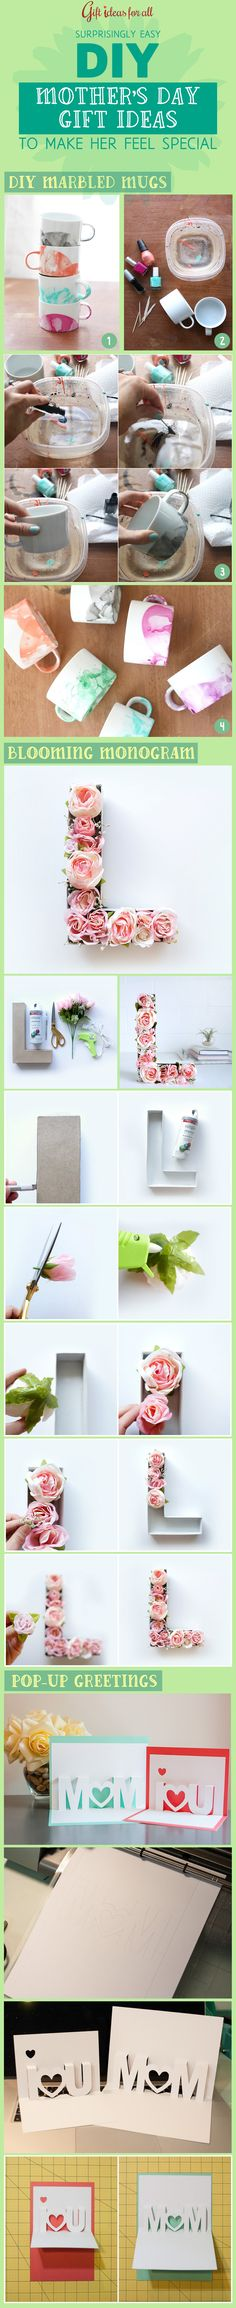 21 Surprisingly Easy #DIY Mother's Day #Gift Ideas to Make Her Feel Special. #gifts #giftideas #giftguide #mothersdaygift #mothersday